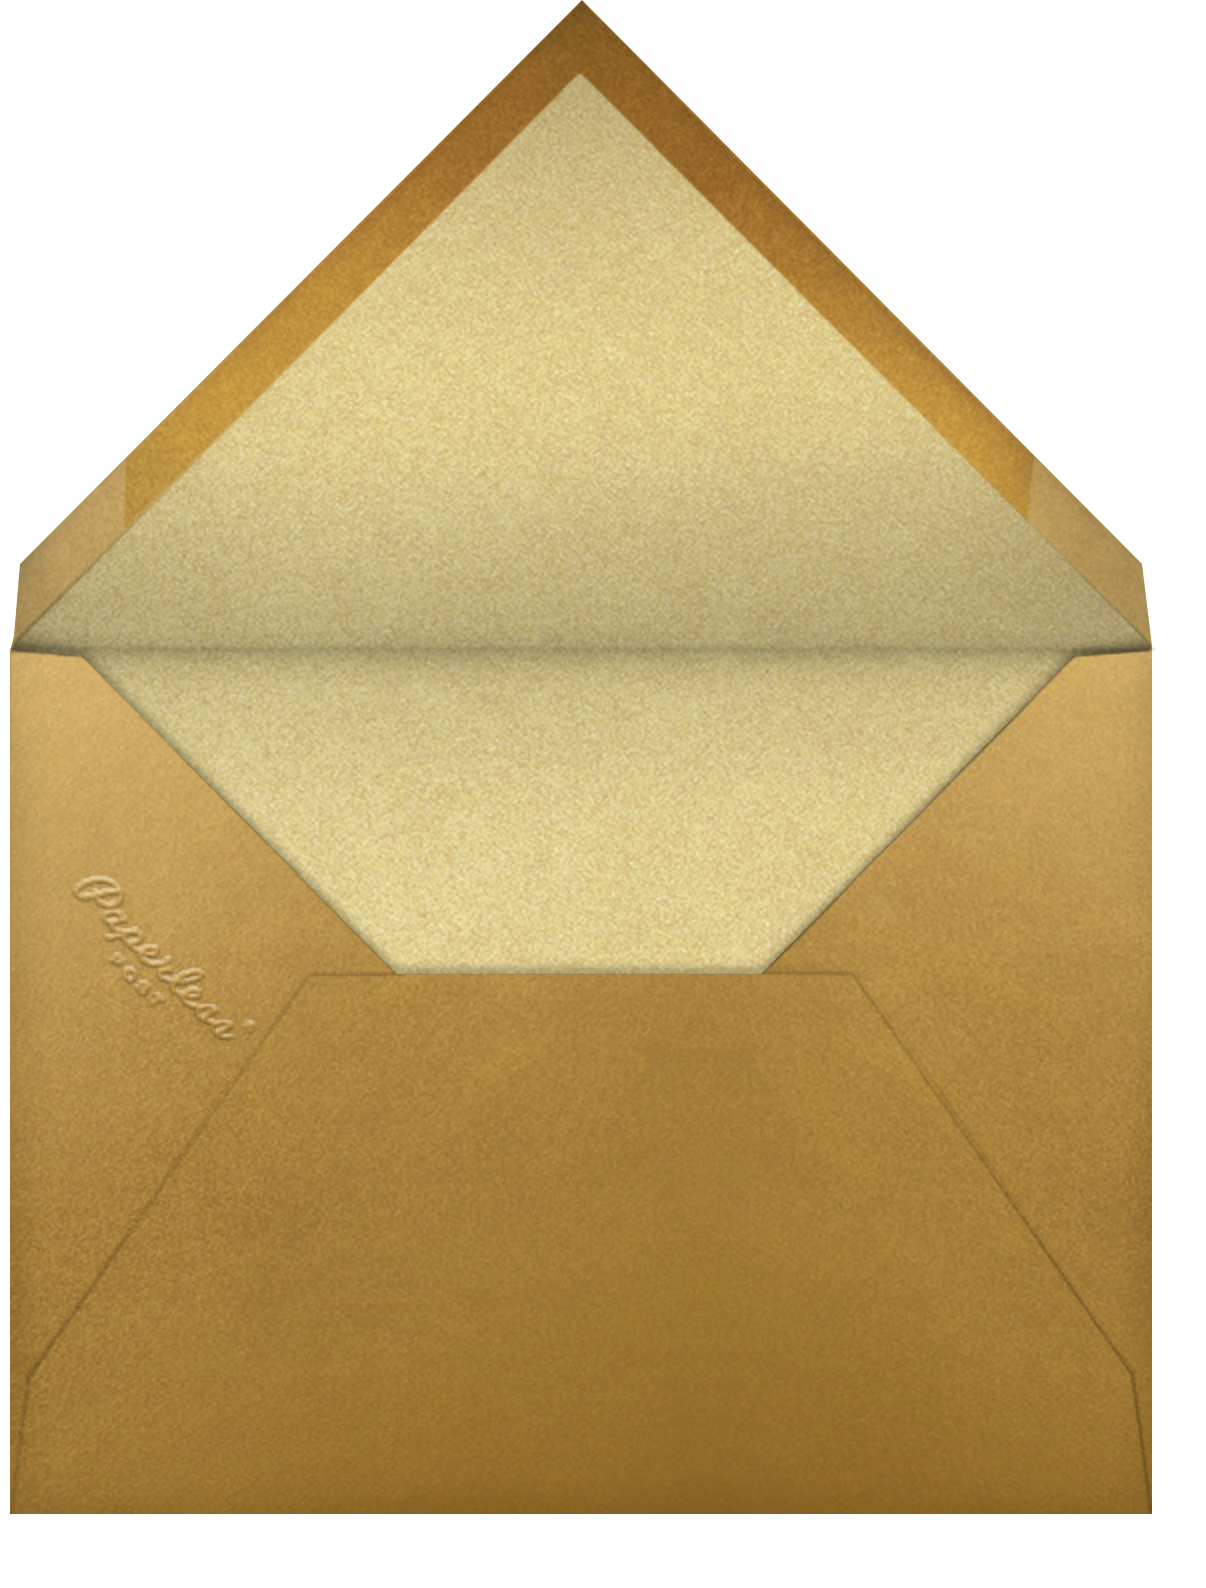 Scrapbooked - Paperless Post - Graduation - envelope back